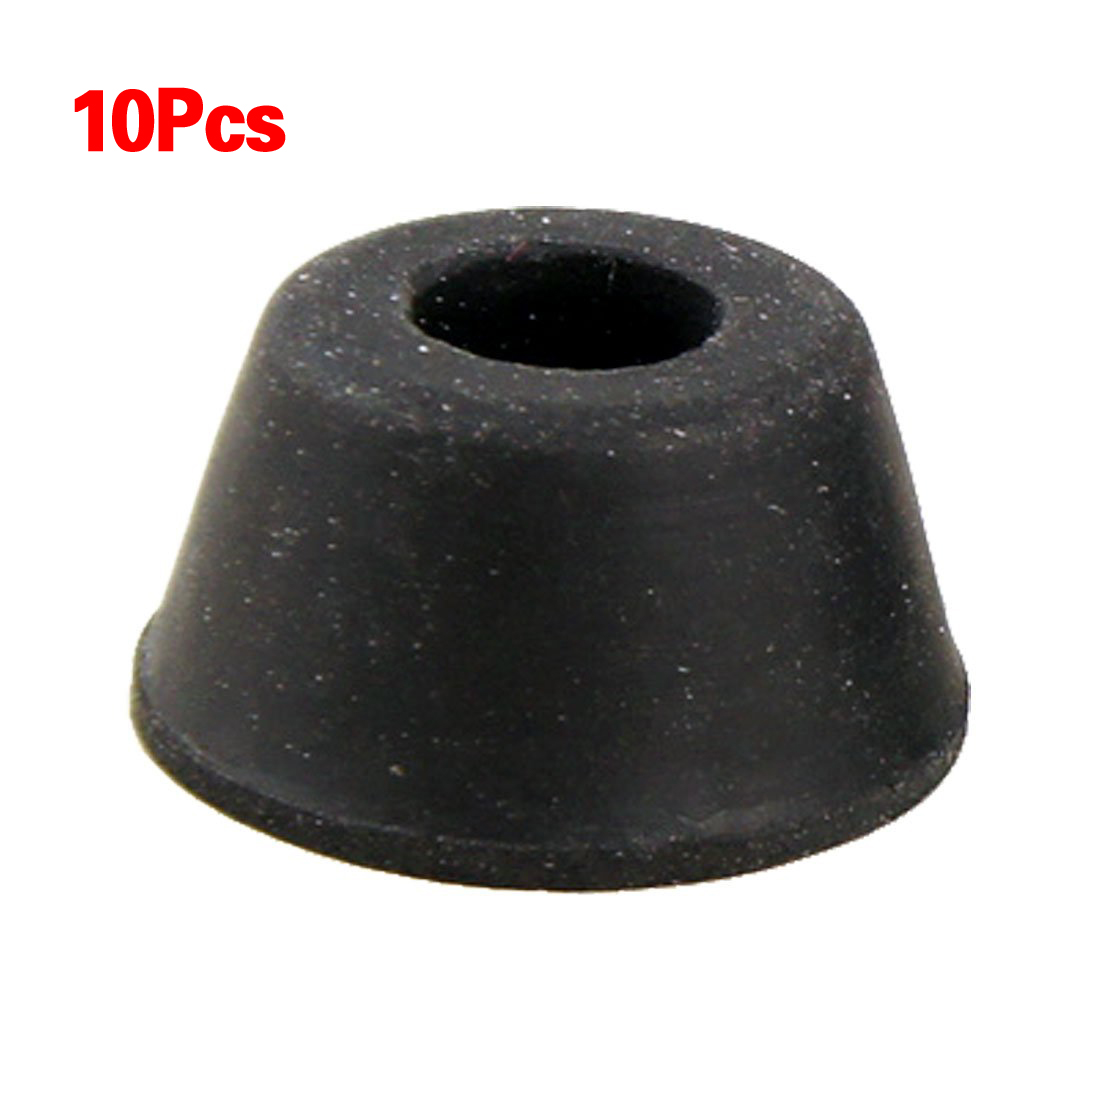 SZS Hot 10Pcs 21mm X 12mm Black Conical Recessed Rubber Feet Bumpers Pads Free Shipping